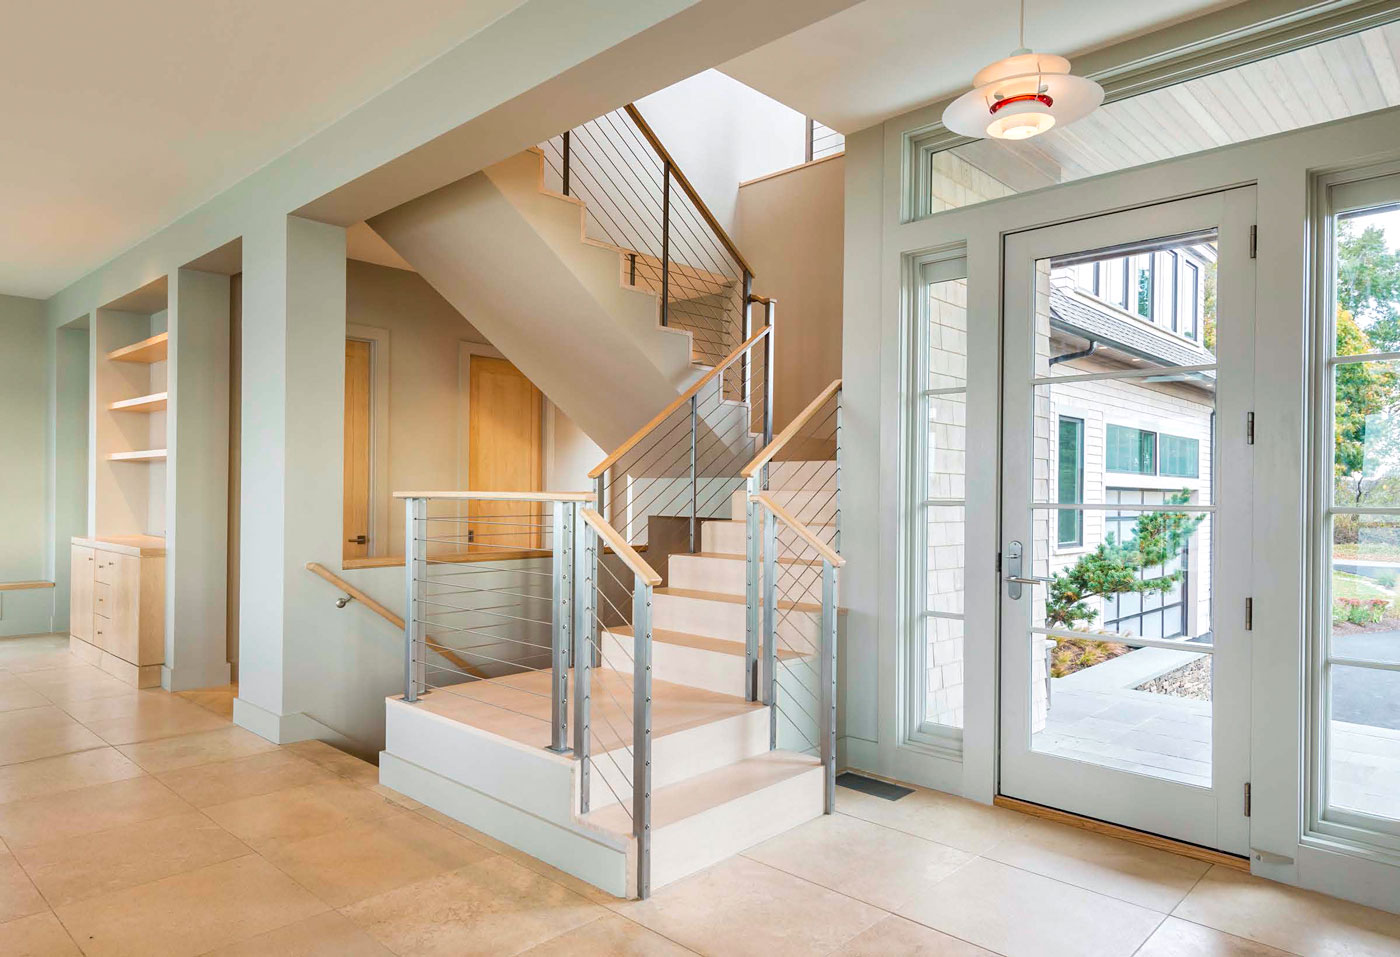 front entry of home with glass doors, tiled floor and stairway